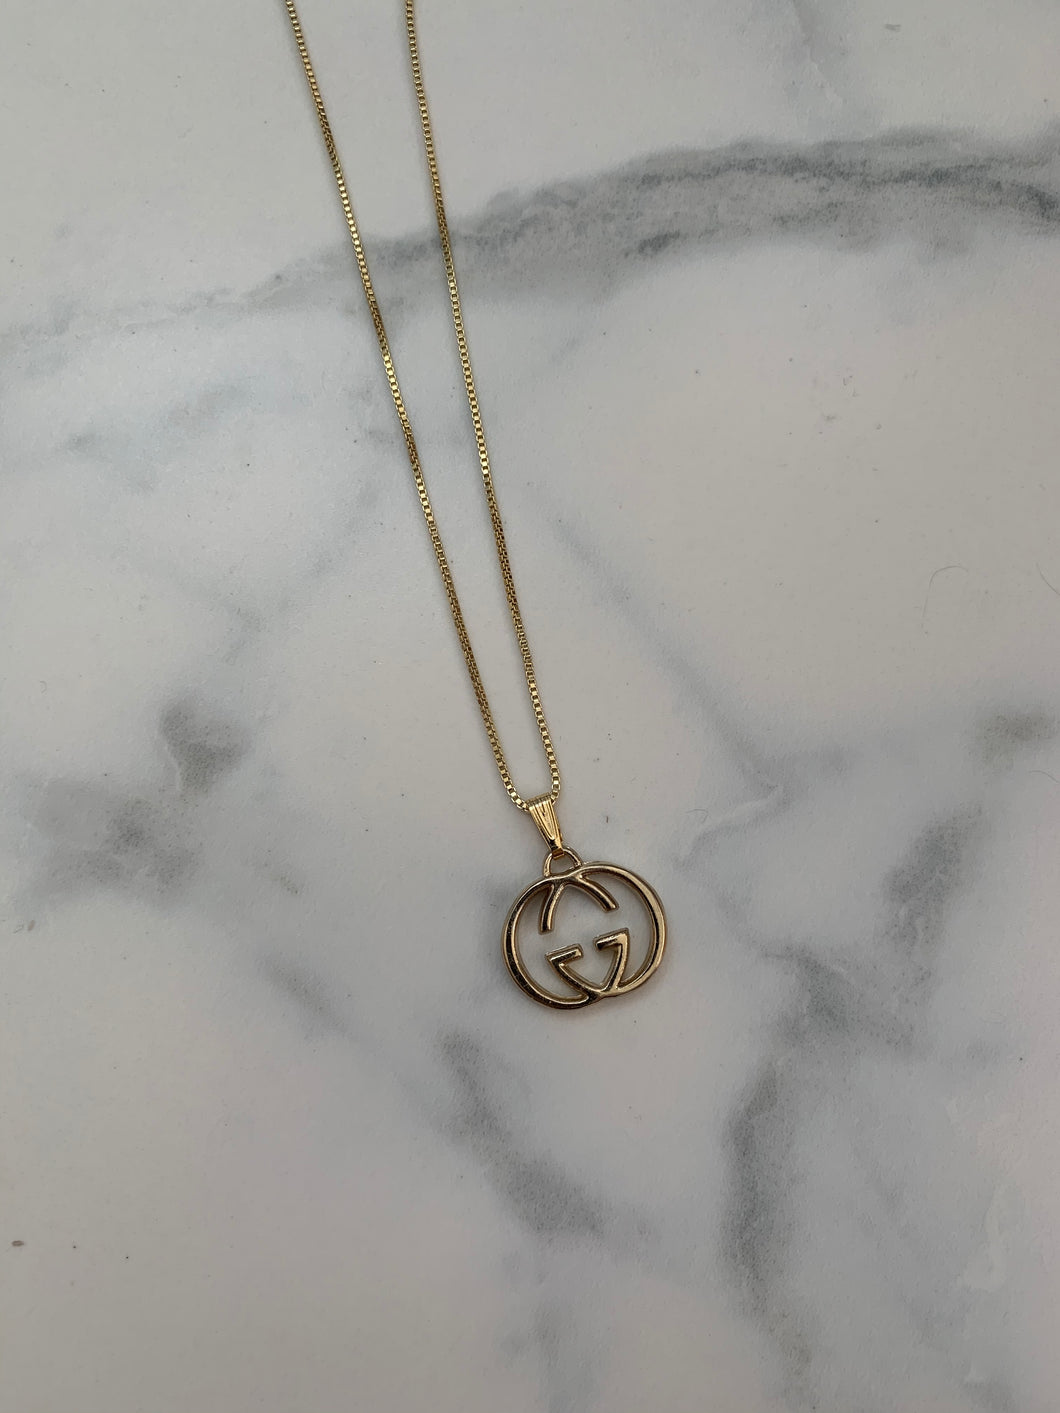 Gucci Charm Necklace